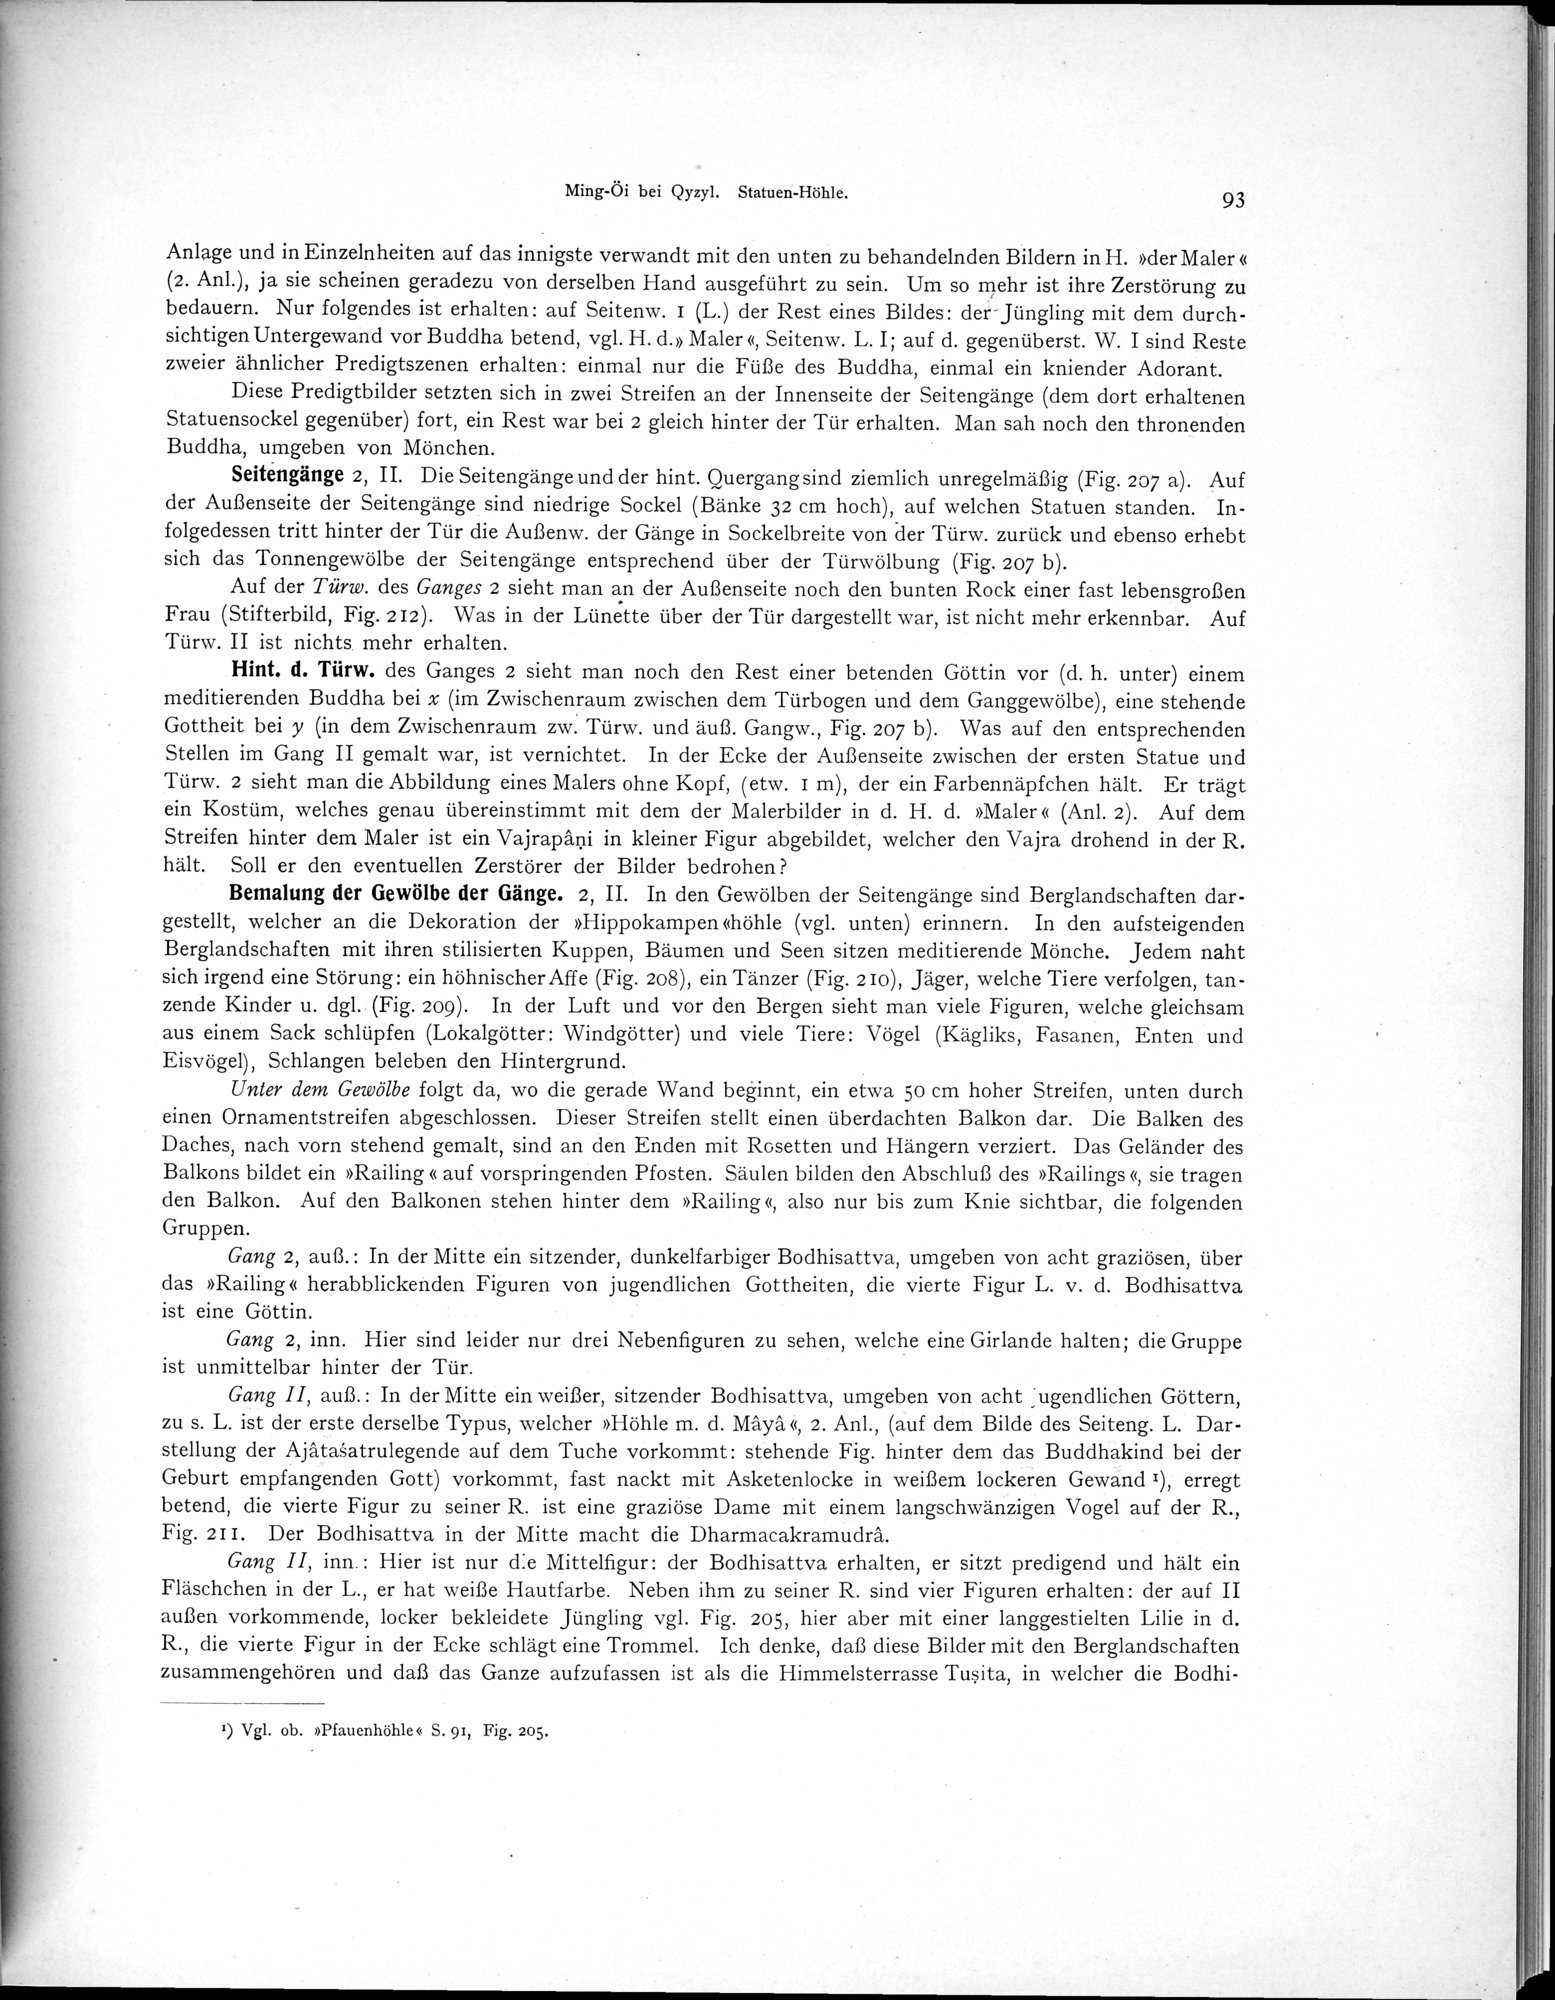 Altbuddhistische Kultstätten in Chinesisch-Turkistan : vol.1 / Page 99 (Grayscale High Resolution Image)